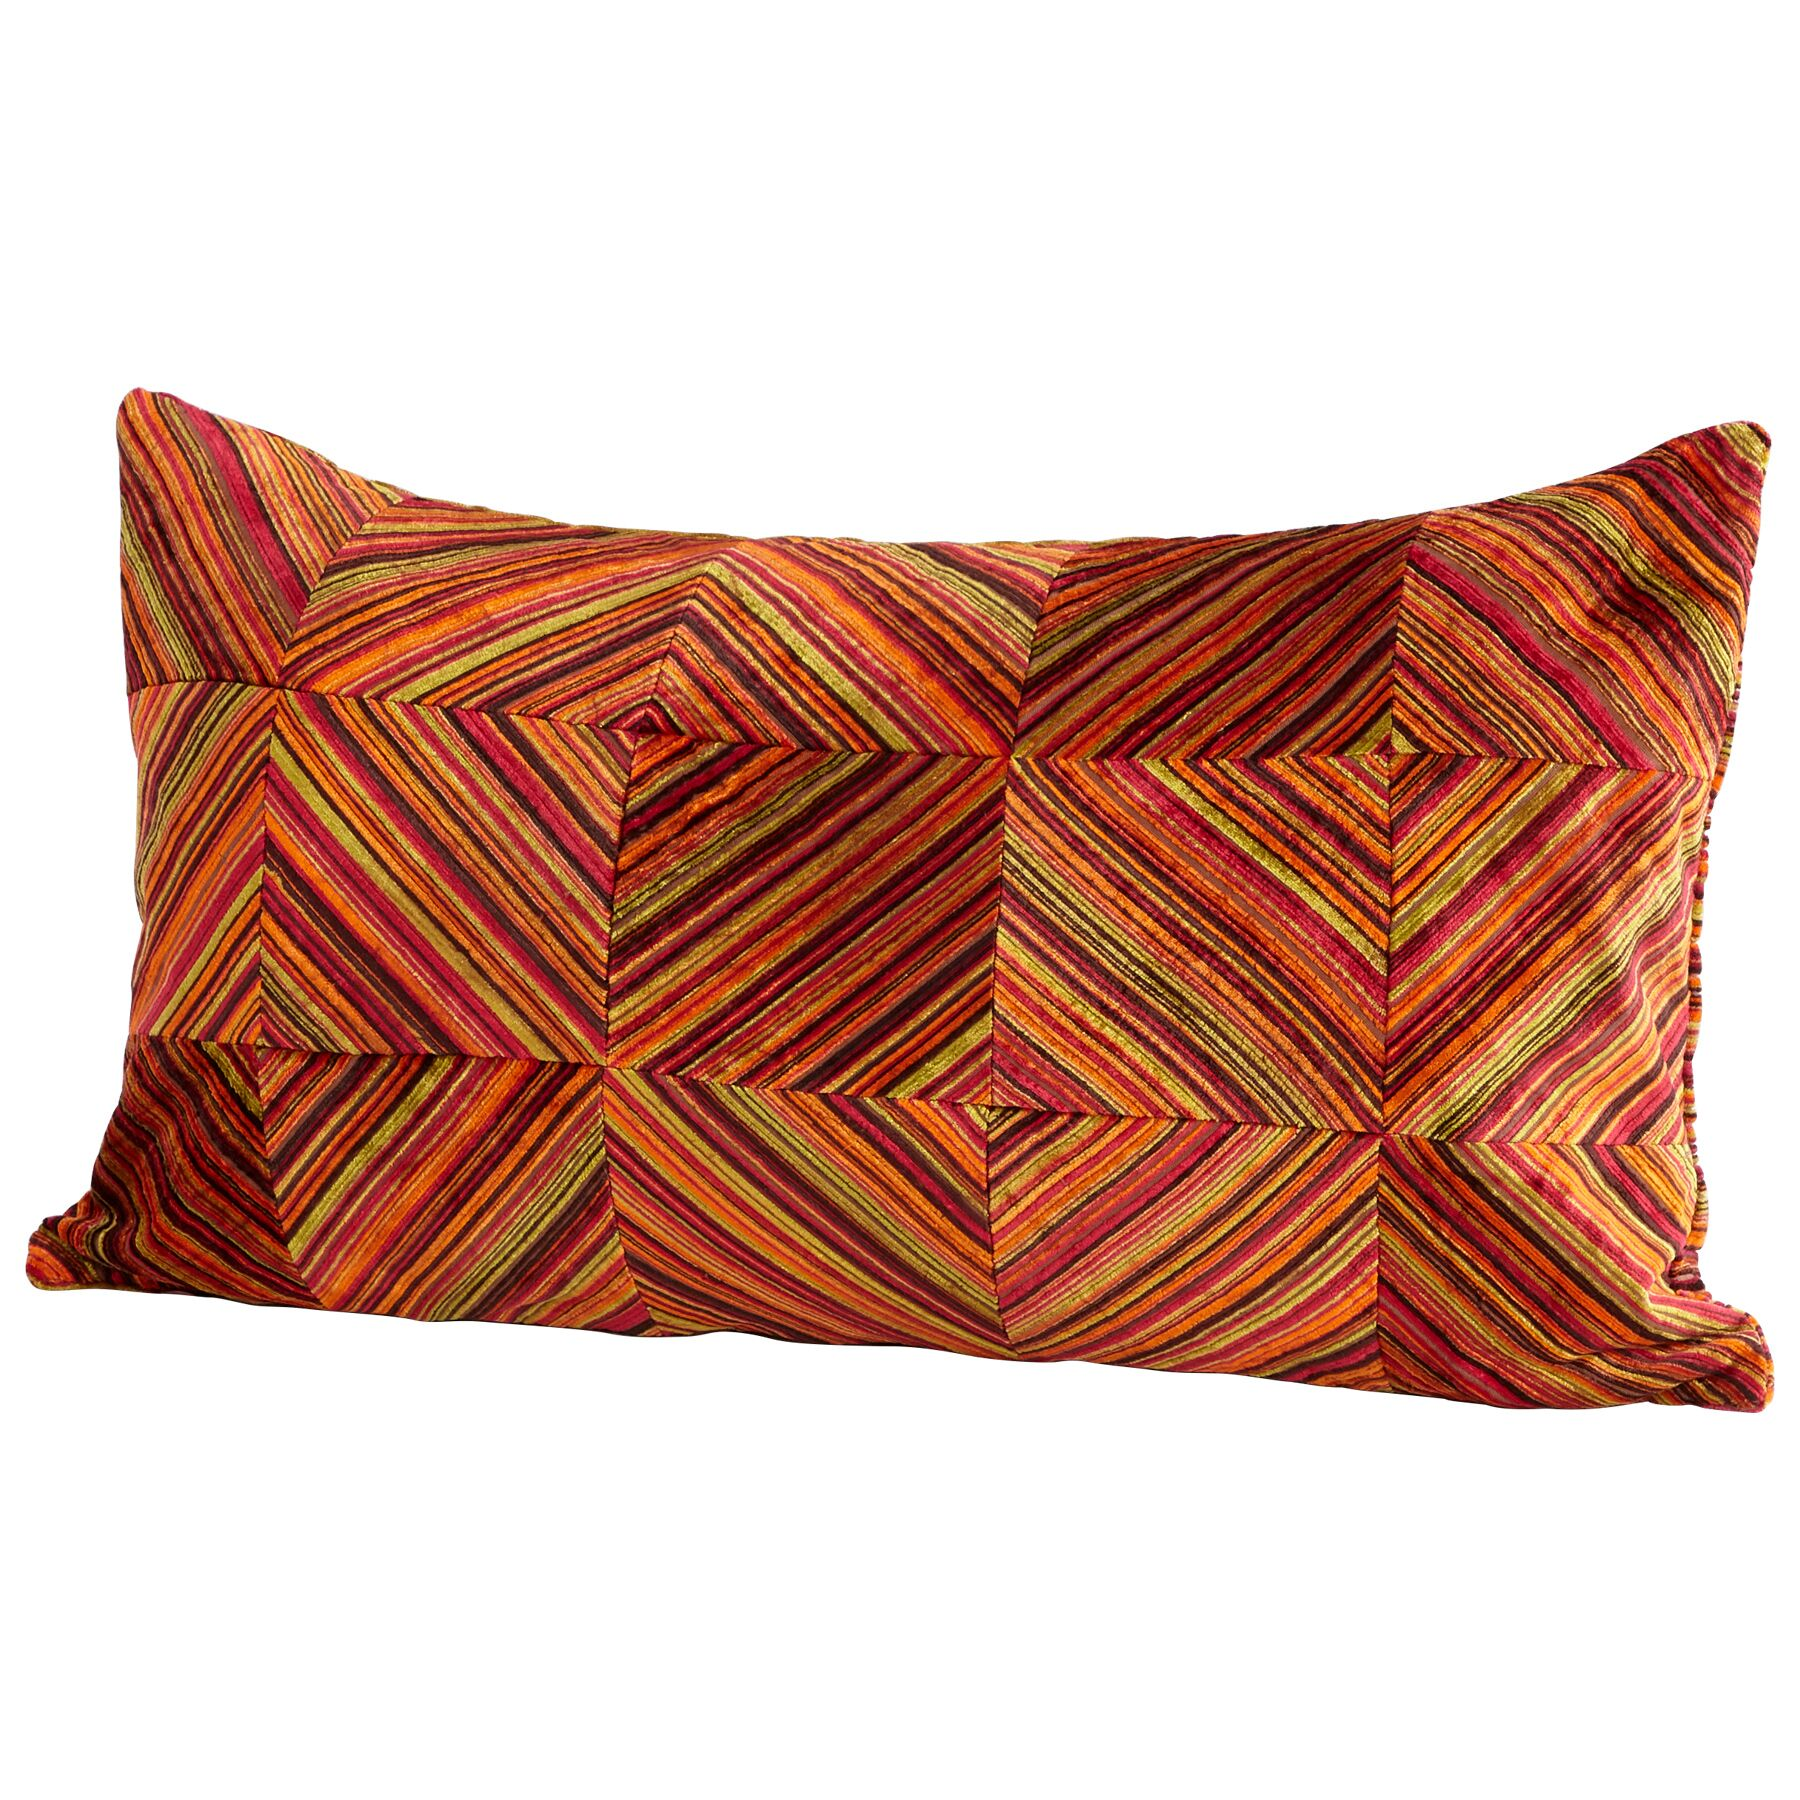 Dueling Diamonds Decorative Cotton Lumbar Pillow